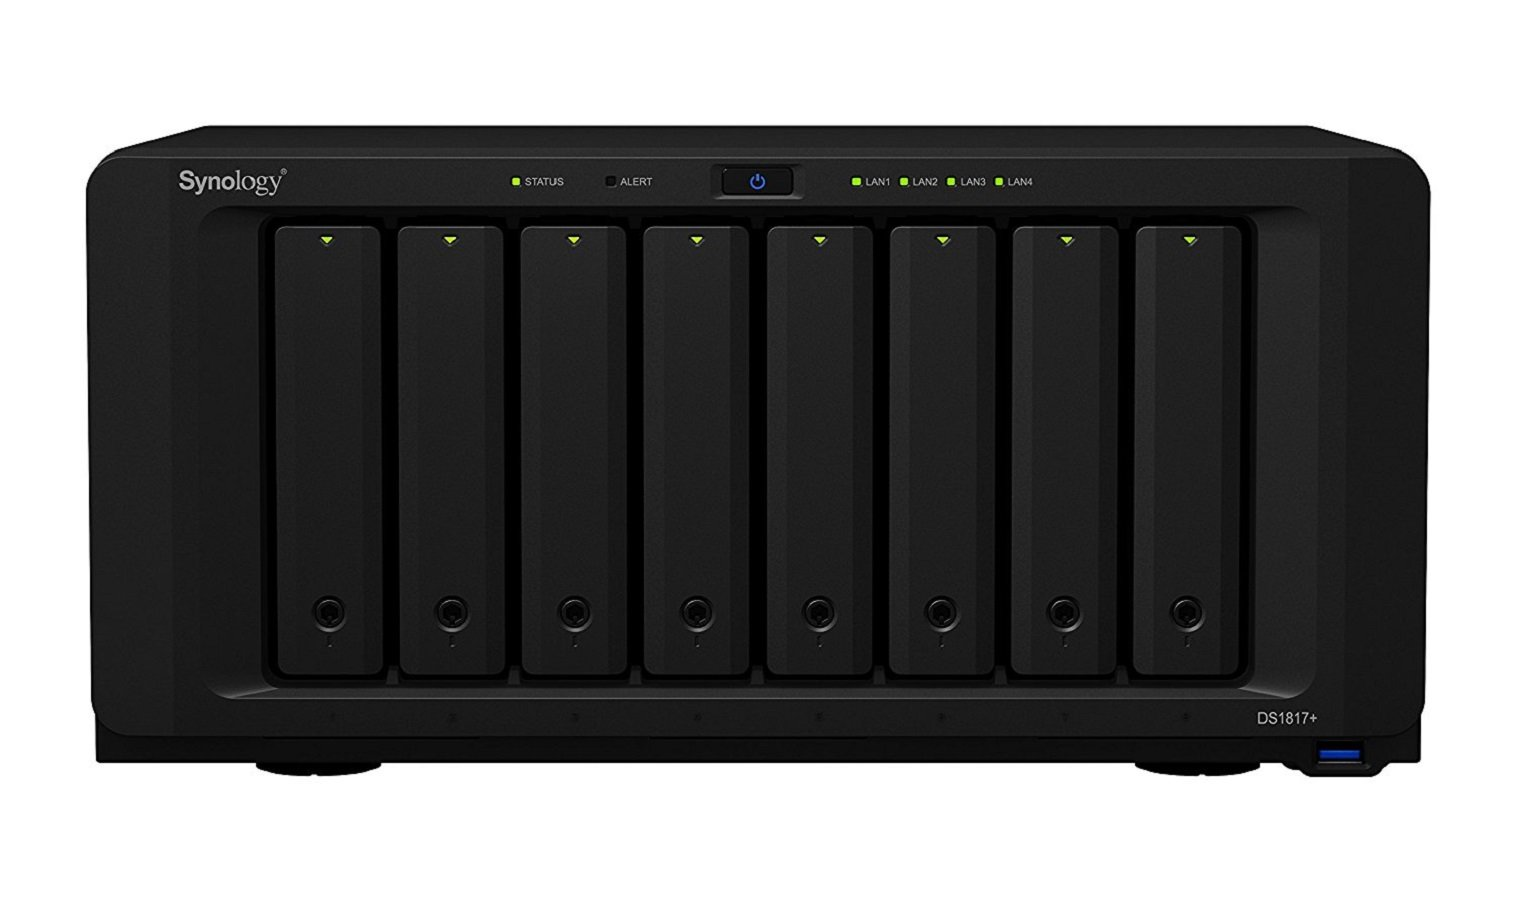 Synology DS1817+ (8GB) 8 - bay NAS Disk Station (Diskless) by Synology (Image #4)